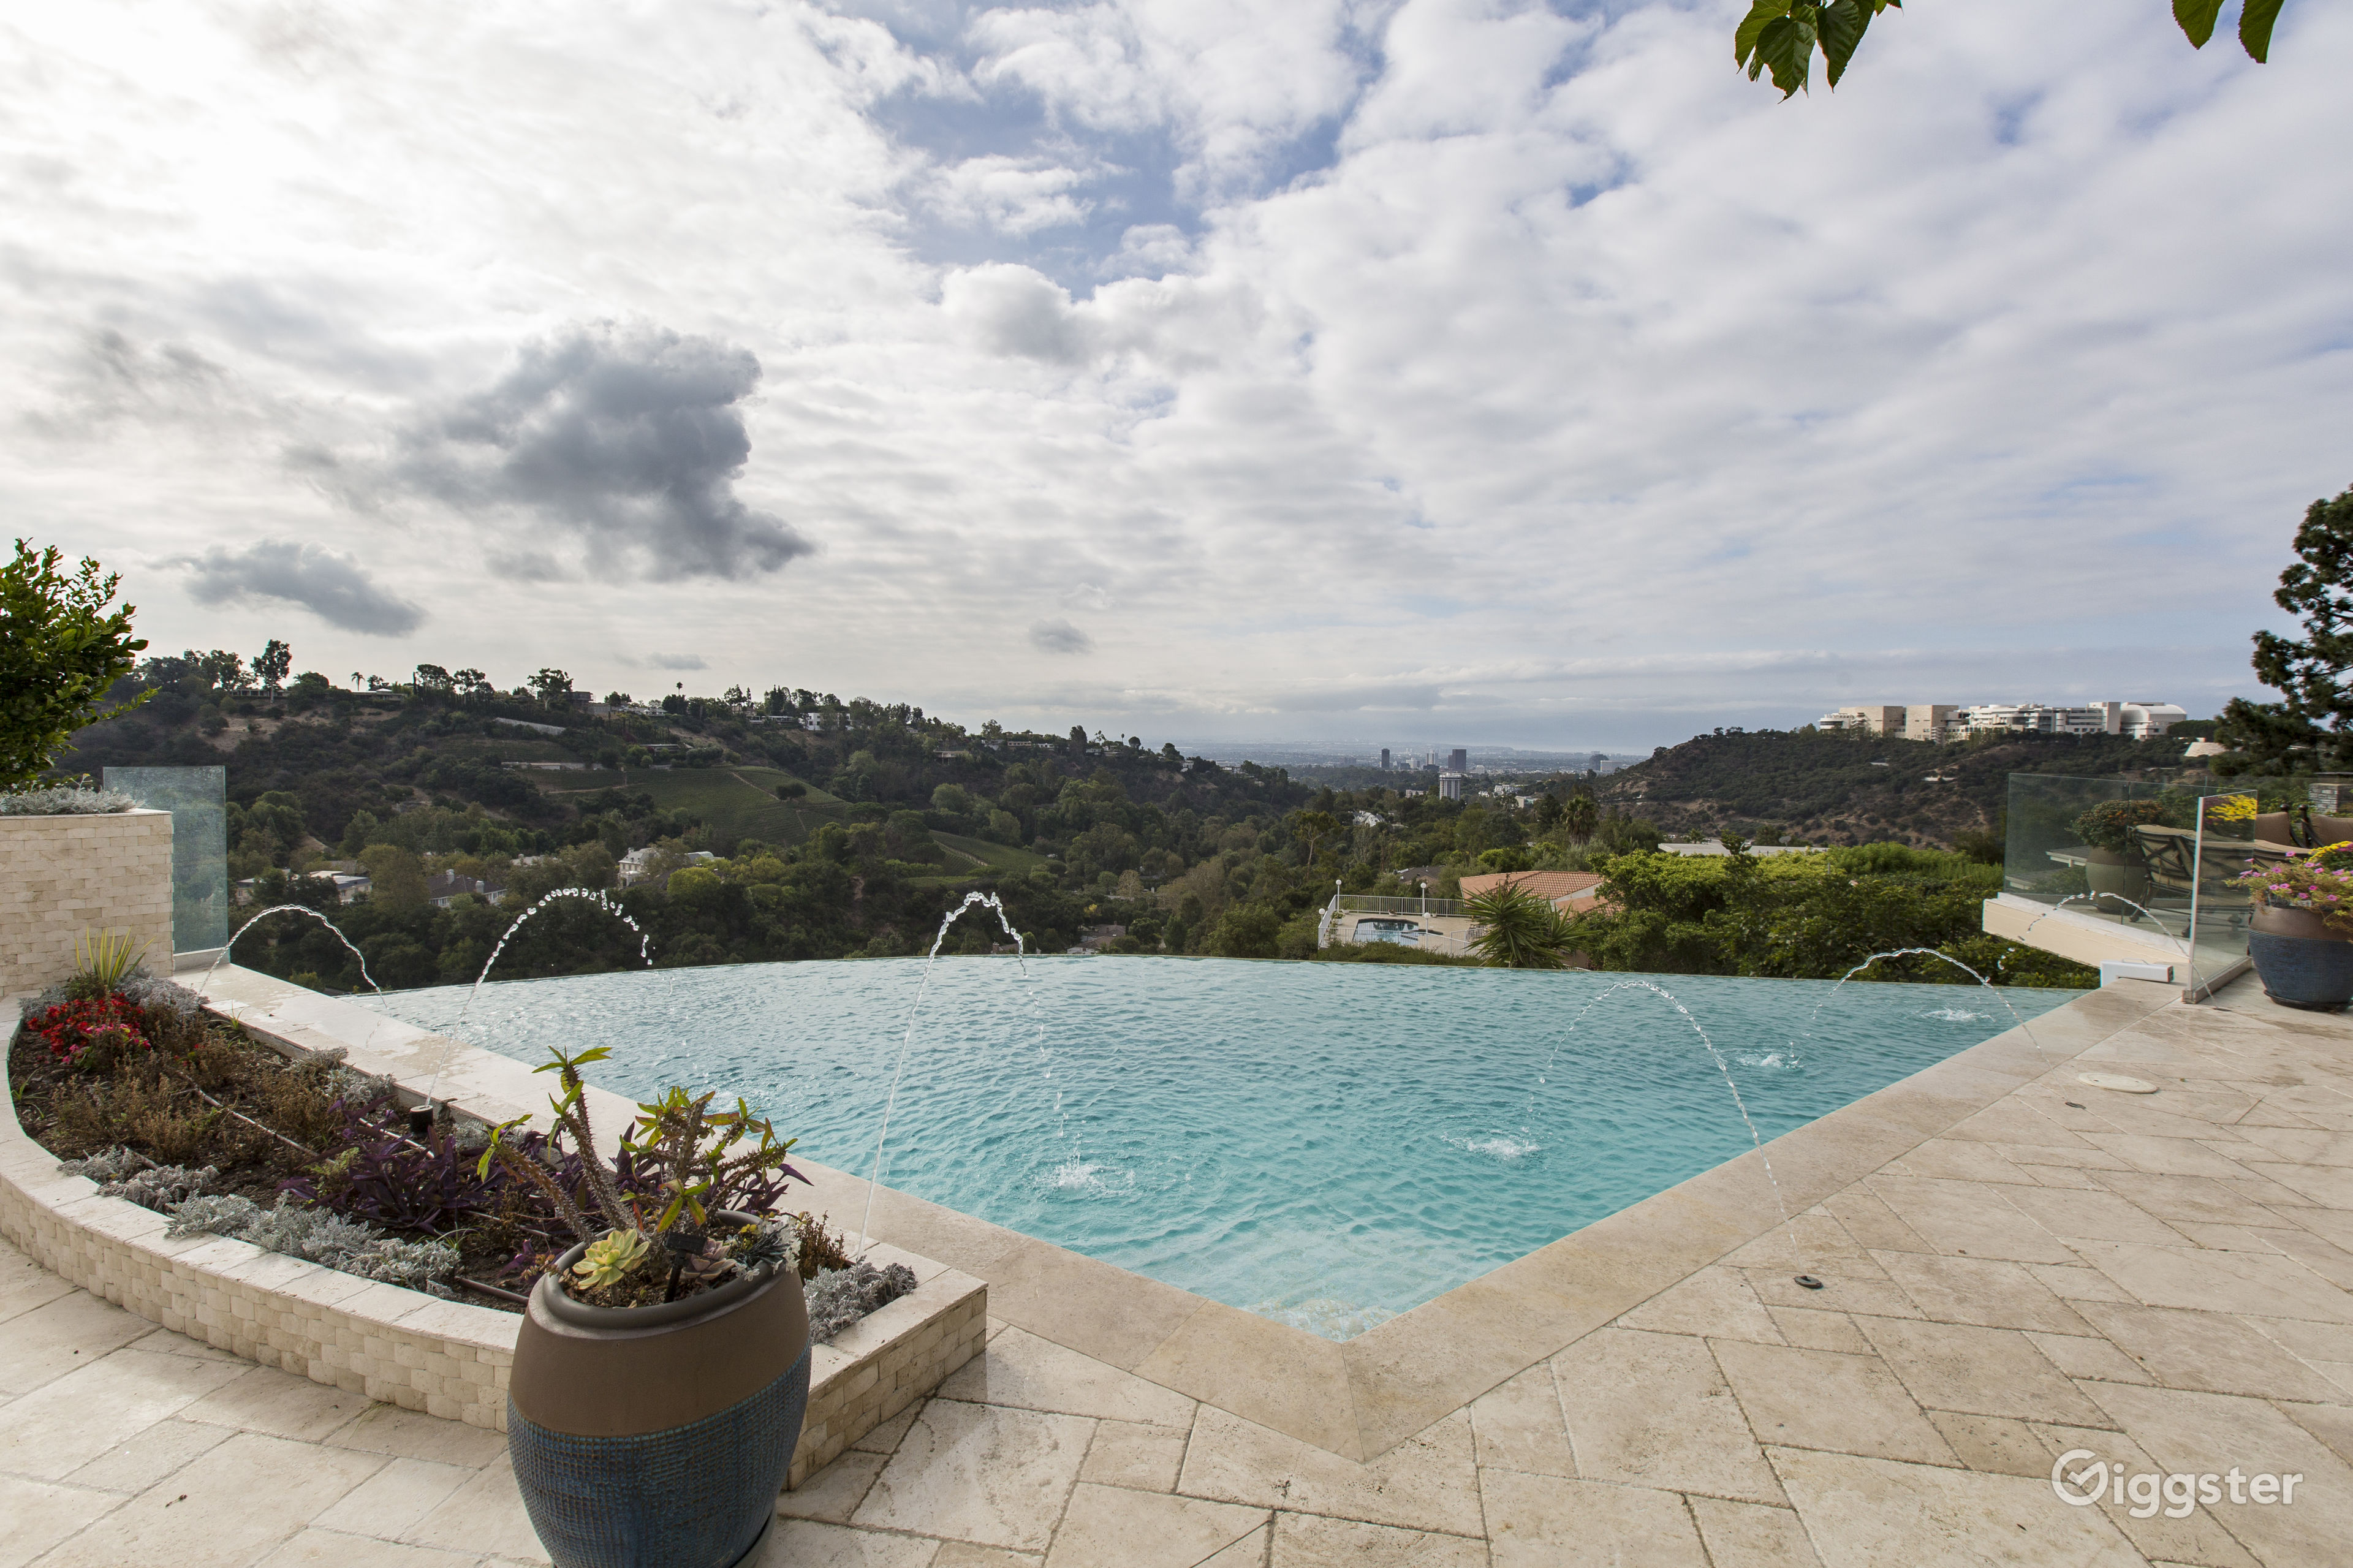 Infinity Pool Jacuzzi Overlooking Los Angeles Rent This Location On Giggster